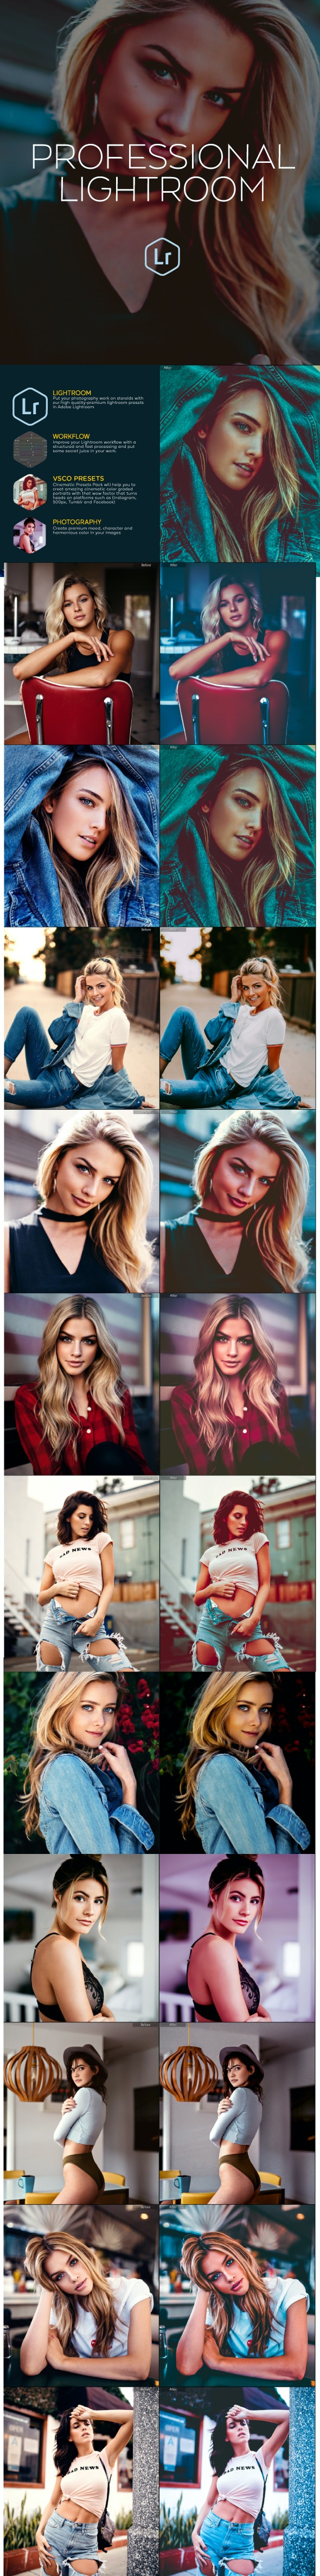 Premium Lightroom Presets - Portrait Lightroom Presets